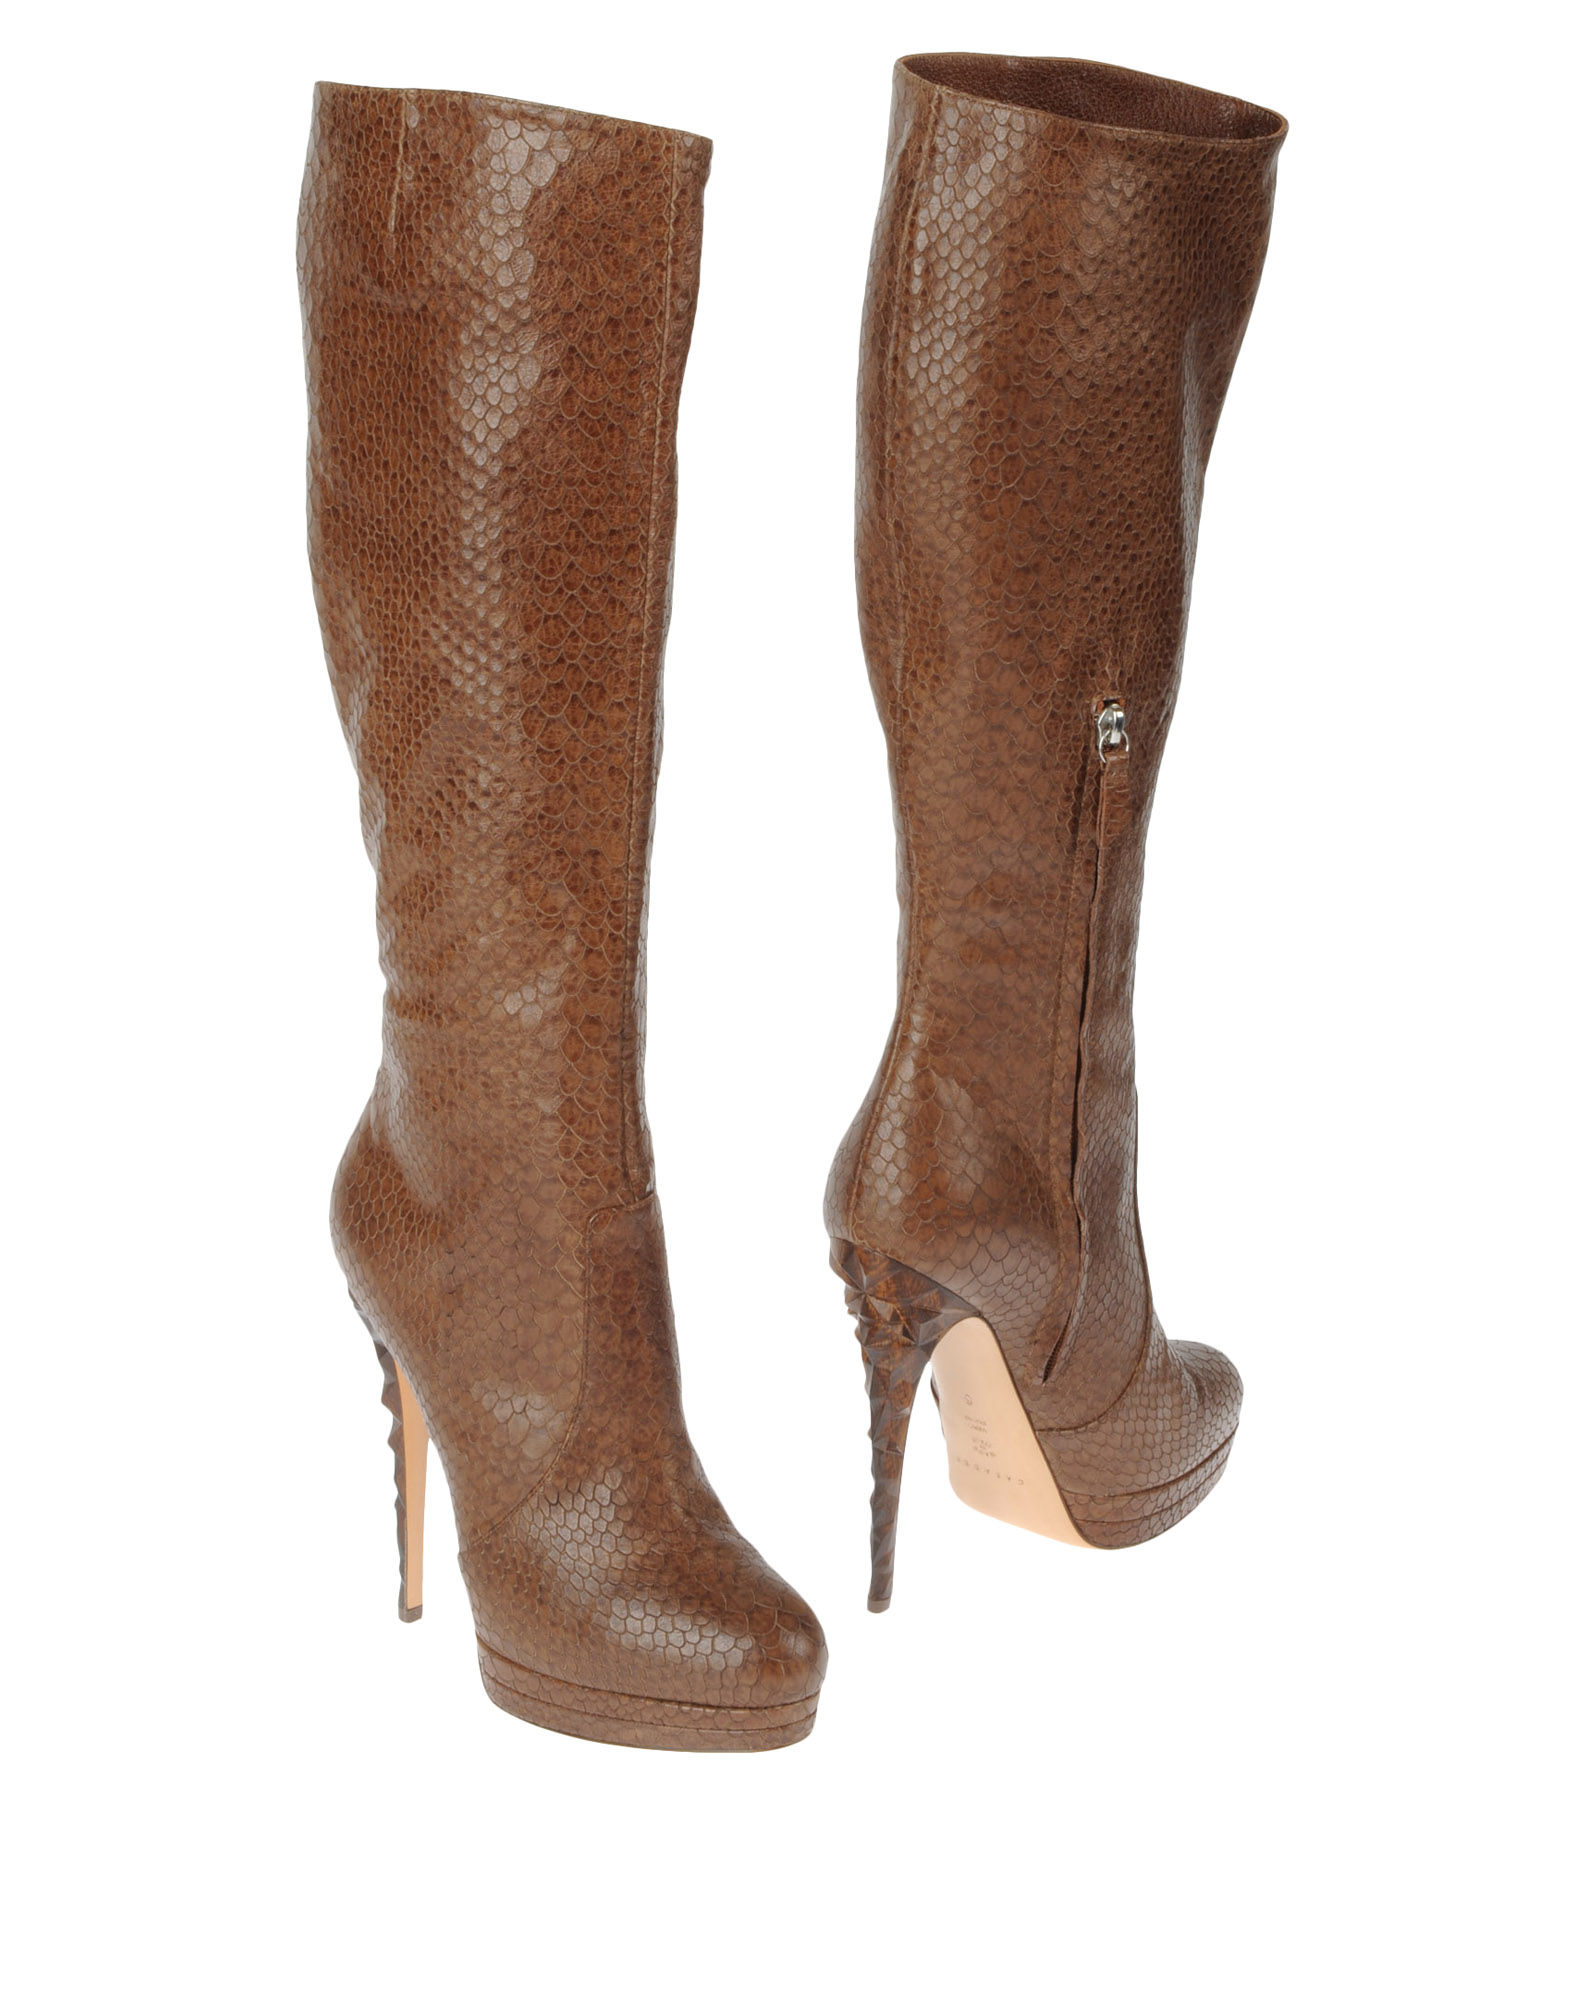 casadei high heeled boots in brown lyst